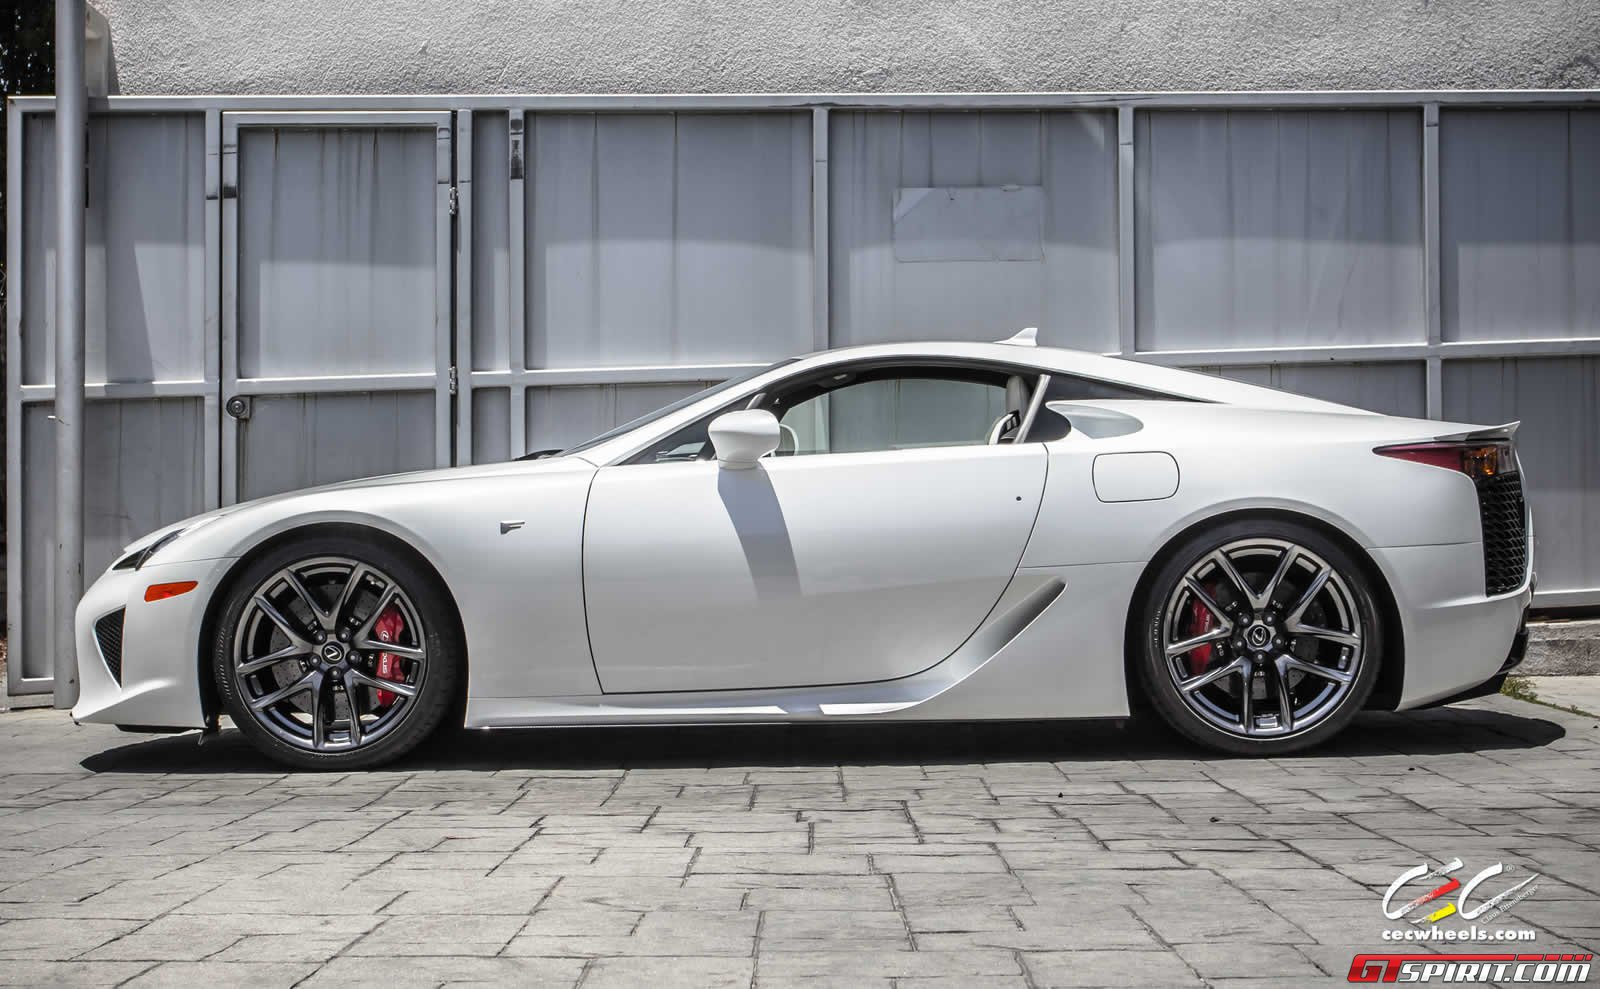 One Of The Worldu0027s Most Expensive, Rarest, And By Far The Most Exotic Car  Ever Pumped Out From The Land Of The Samurai (Japan), The Lexus LFA, ...